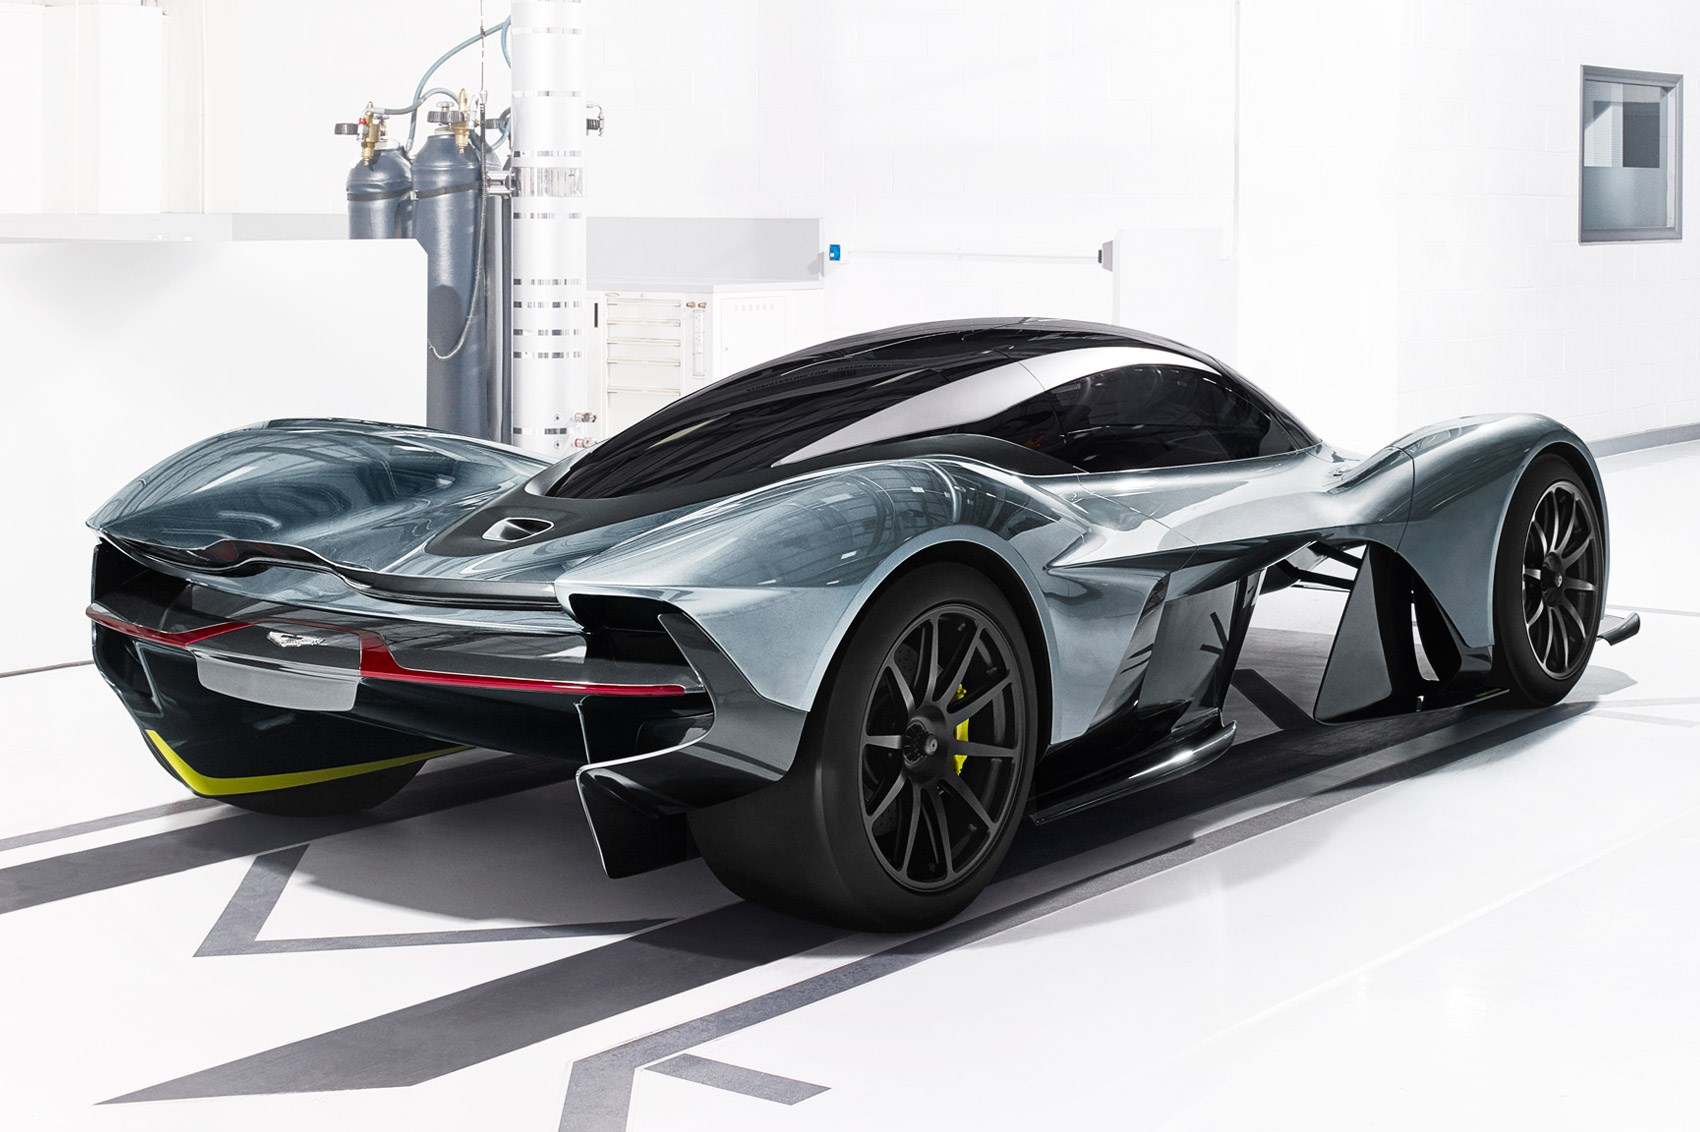 Ride Of The Valkyrie Aston Martin Reveals Hypercar S Tweaked Design